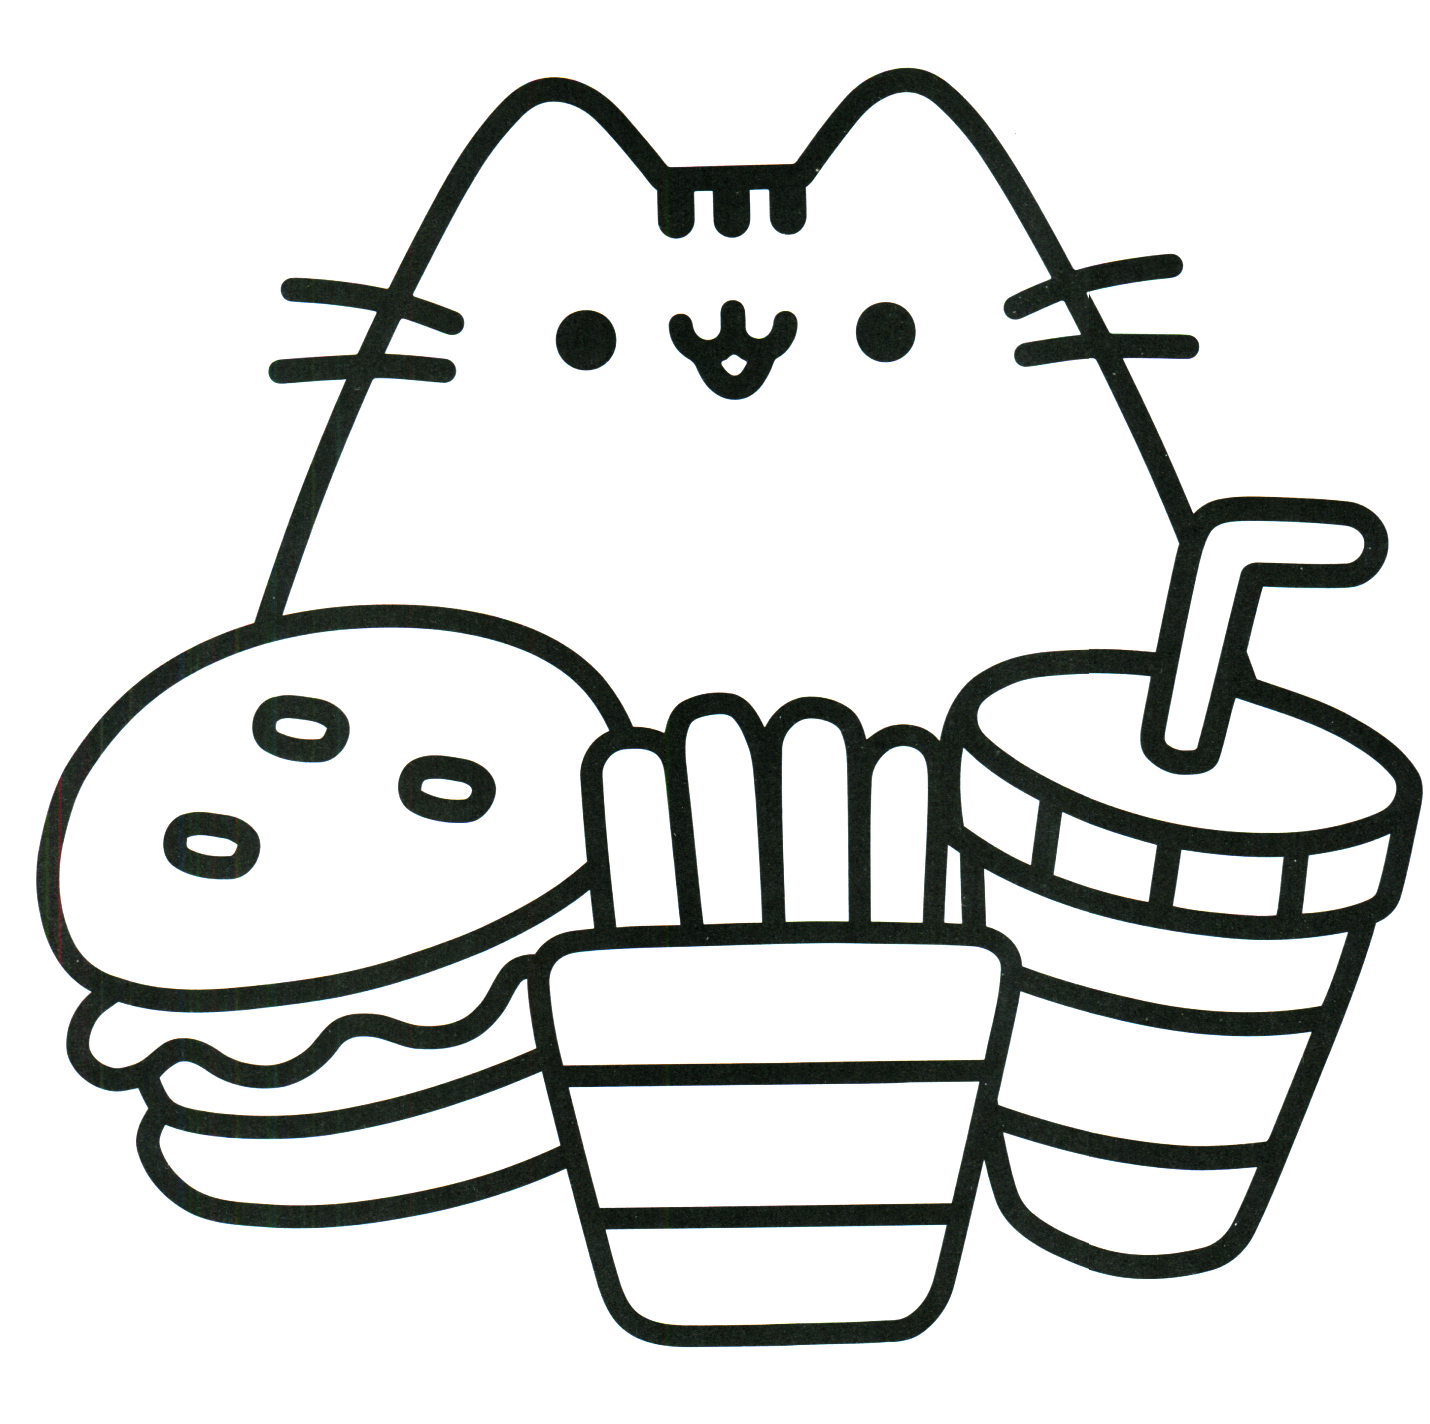 Pusheen Coloring Book Pusheen Pusheen the Cat #catfood